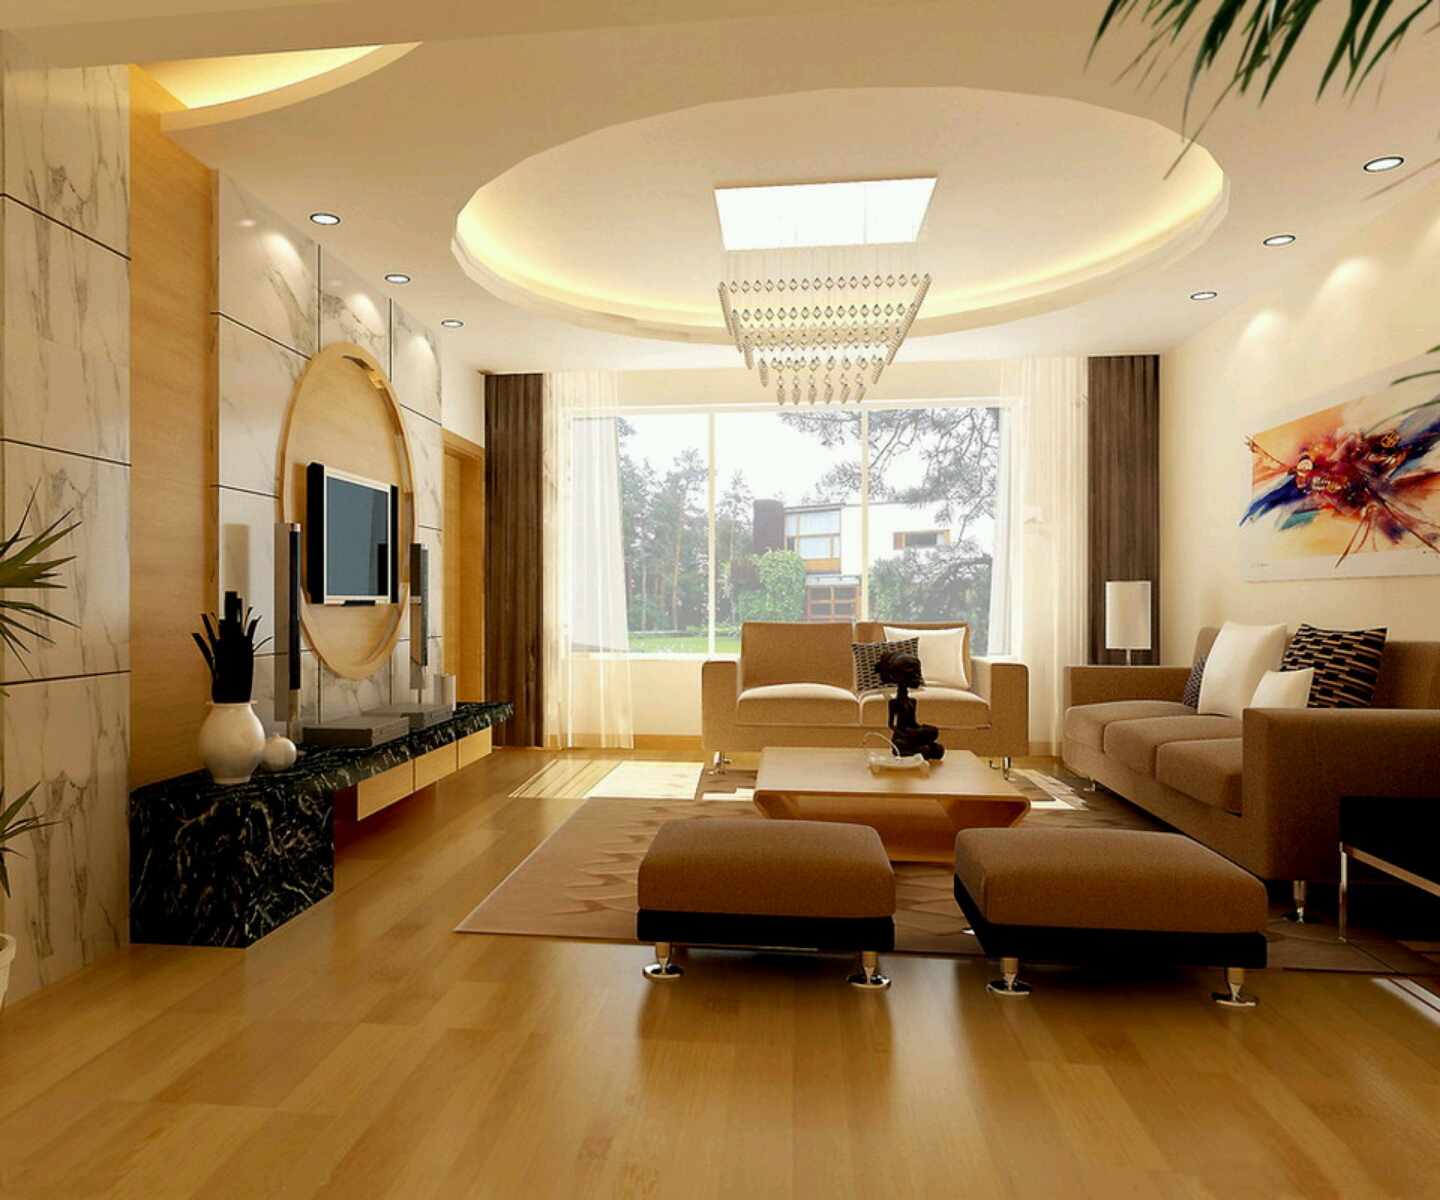 Modern interior decoration living rooms ceiling designs ideas new home designs - Modern living room design ideas ...